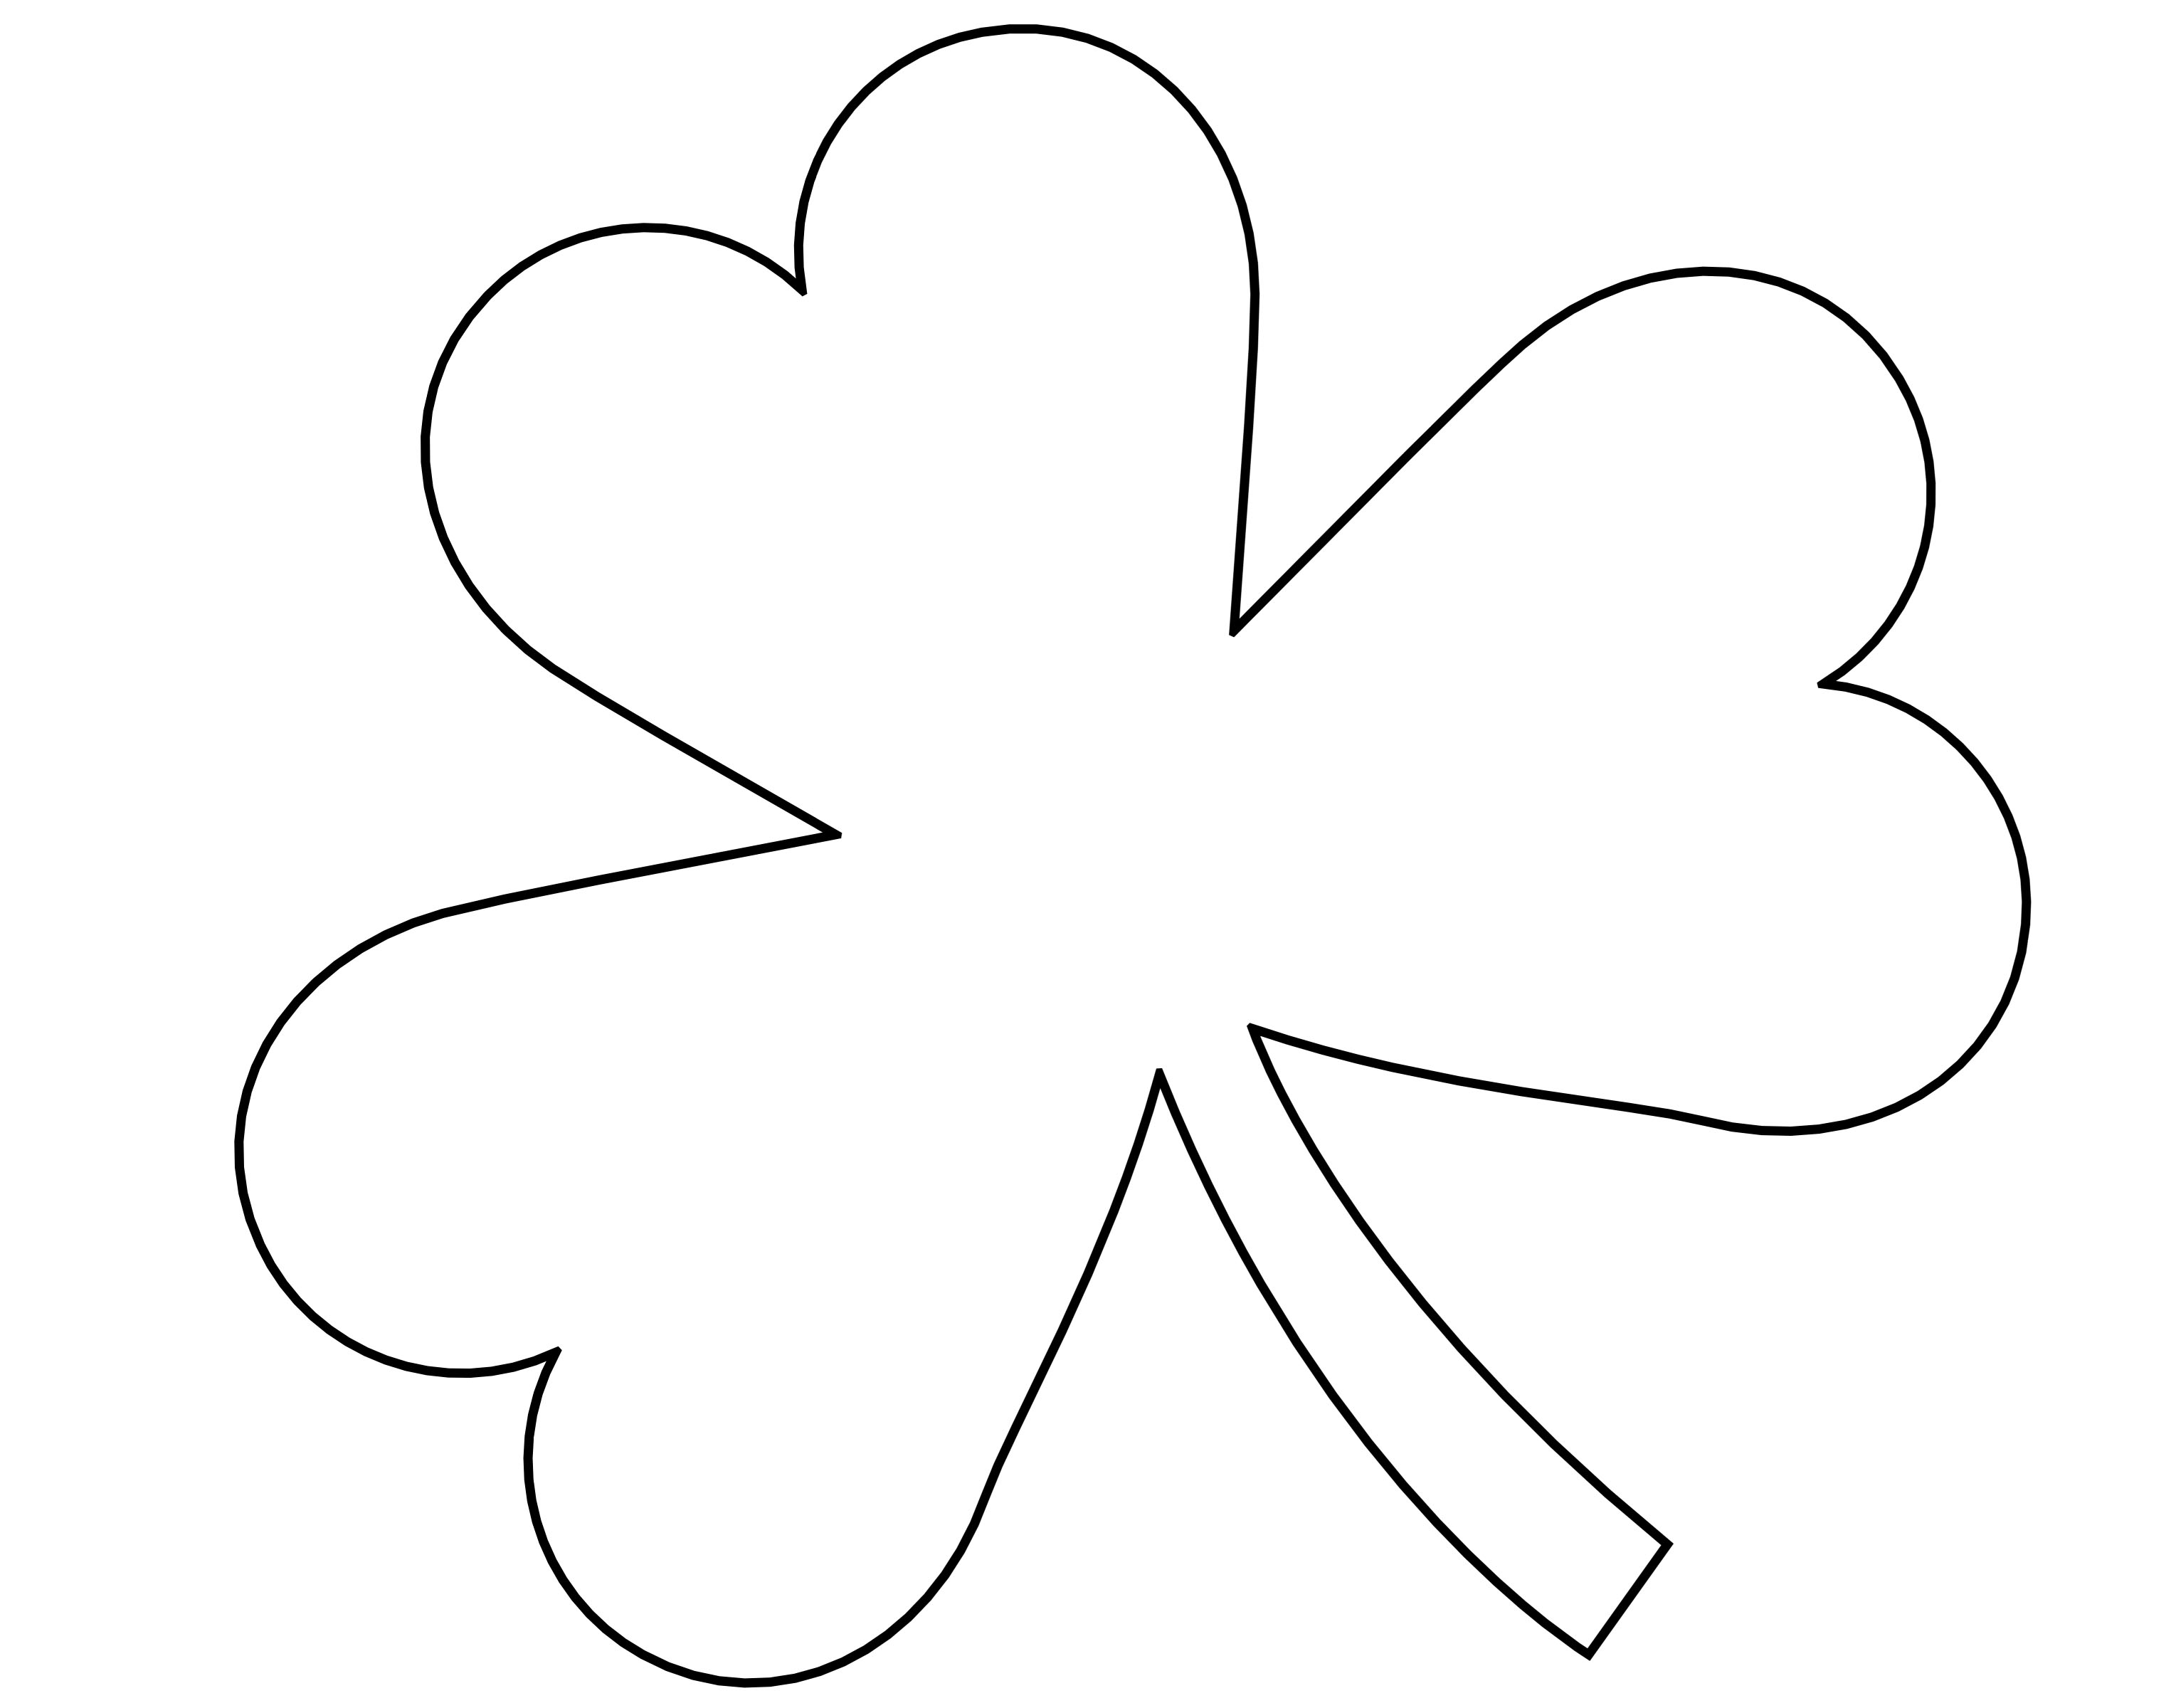 Impeccable image regarding shamrock template printable